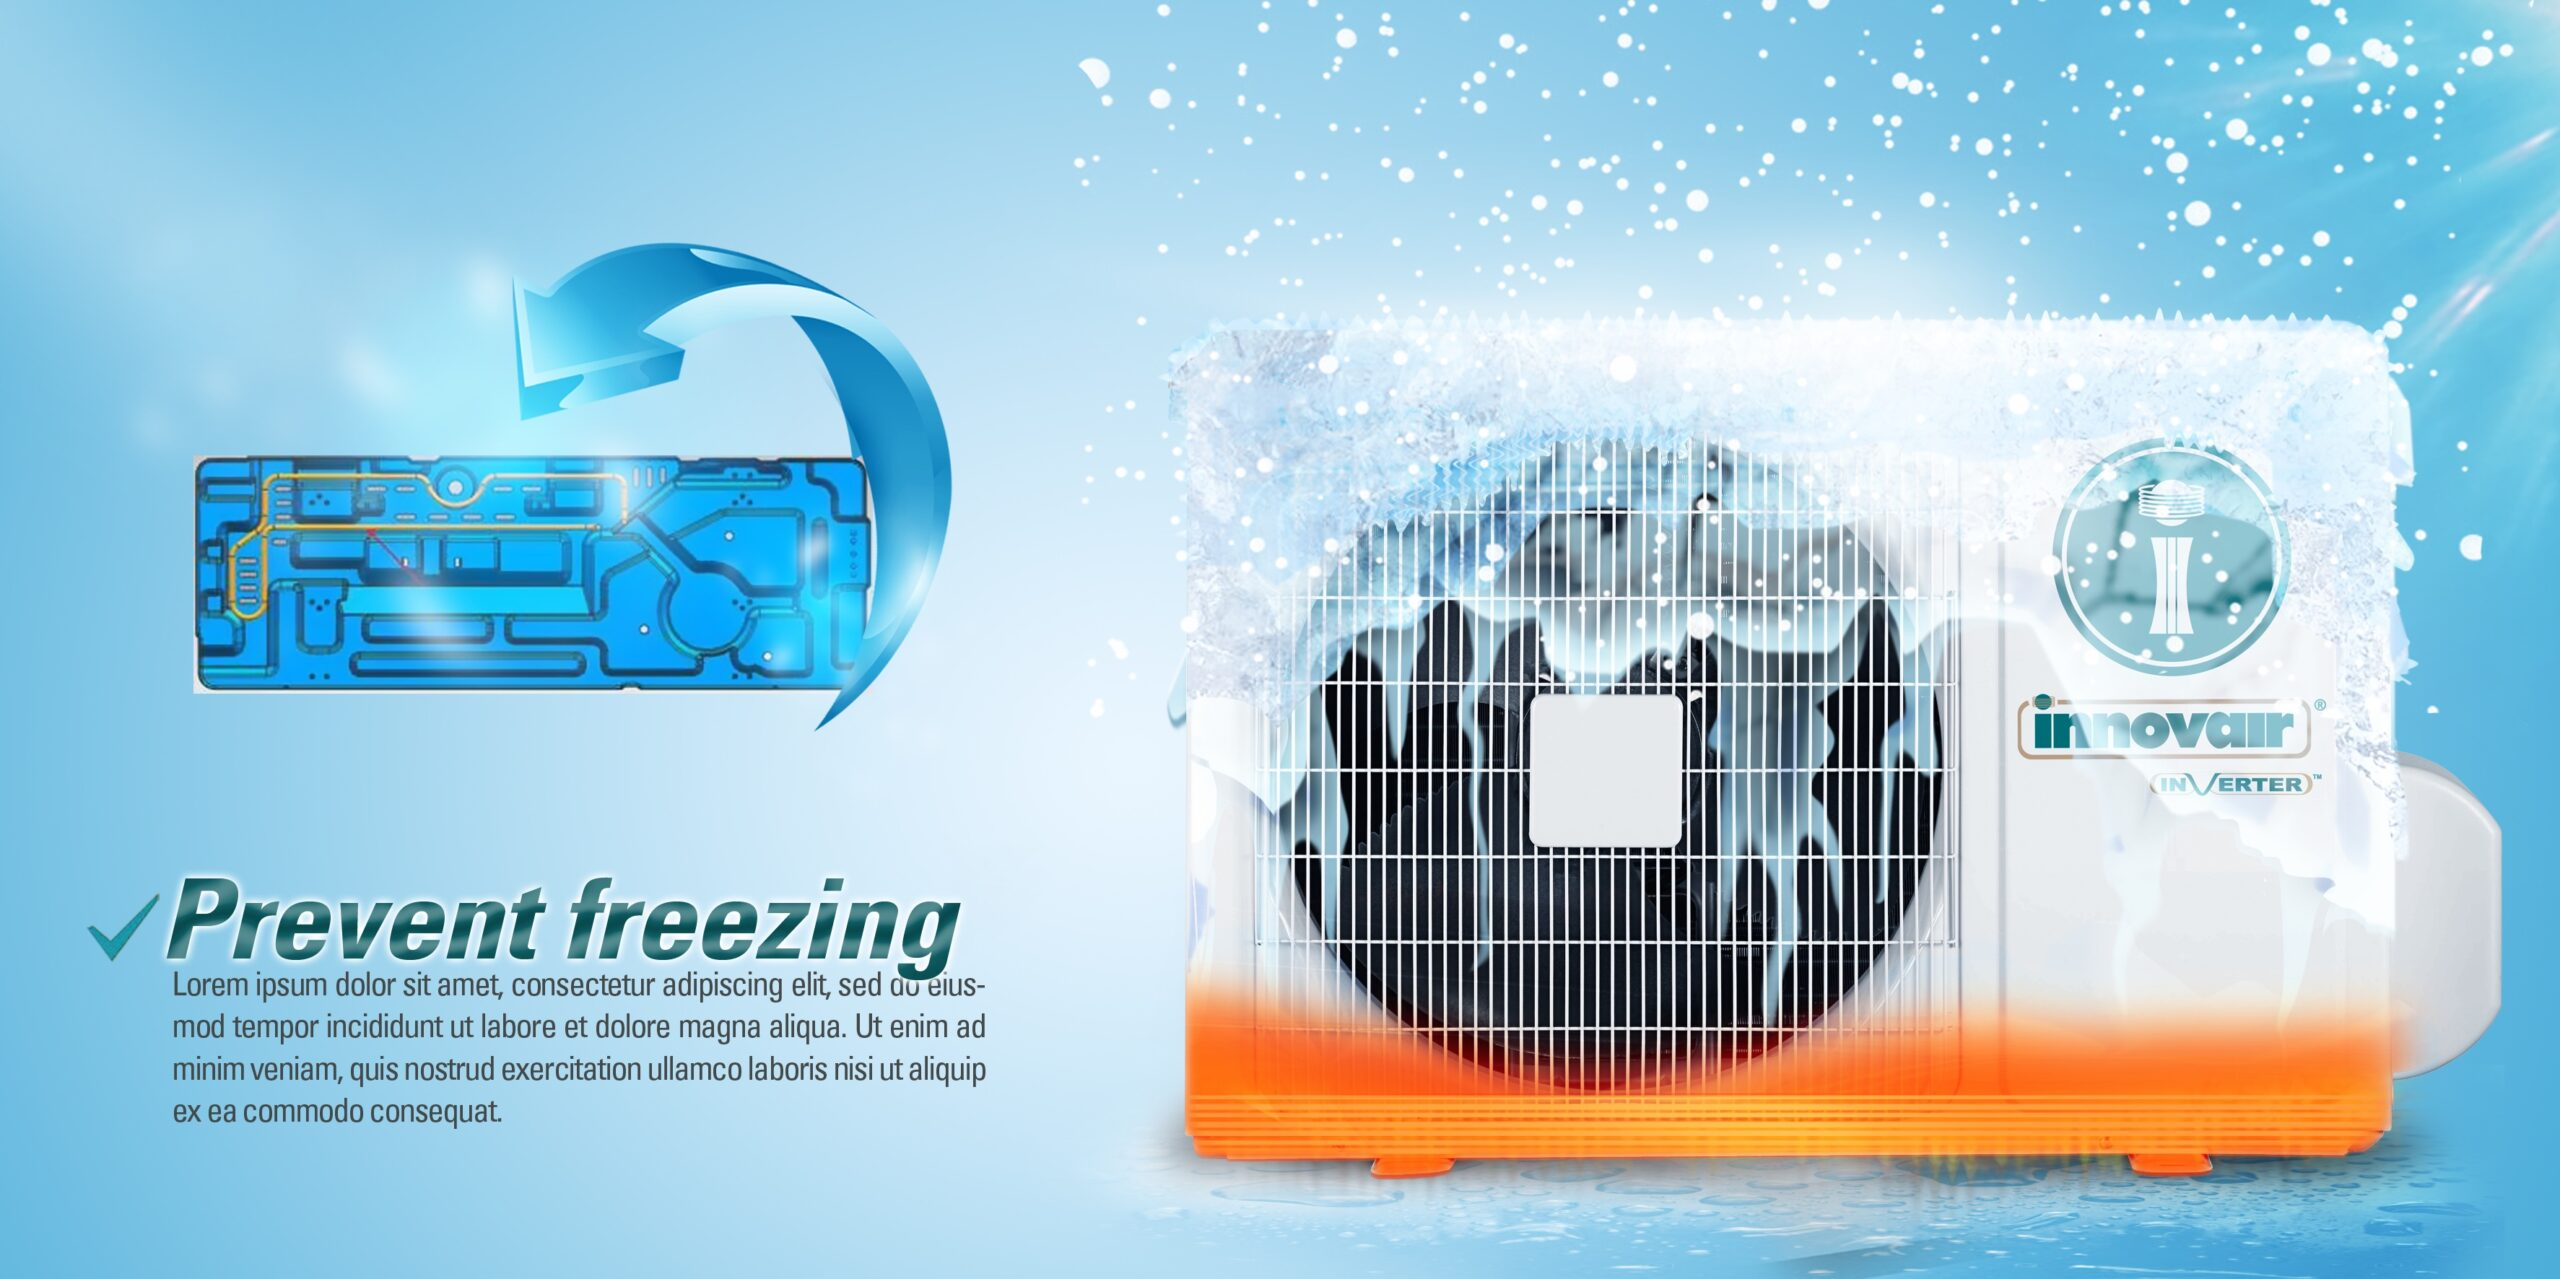 Anti-freezing Technology